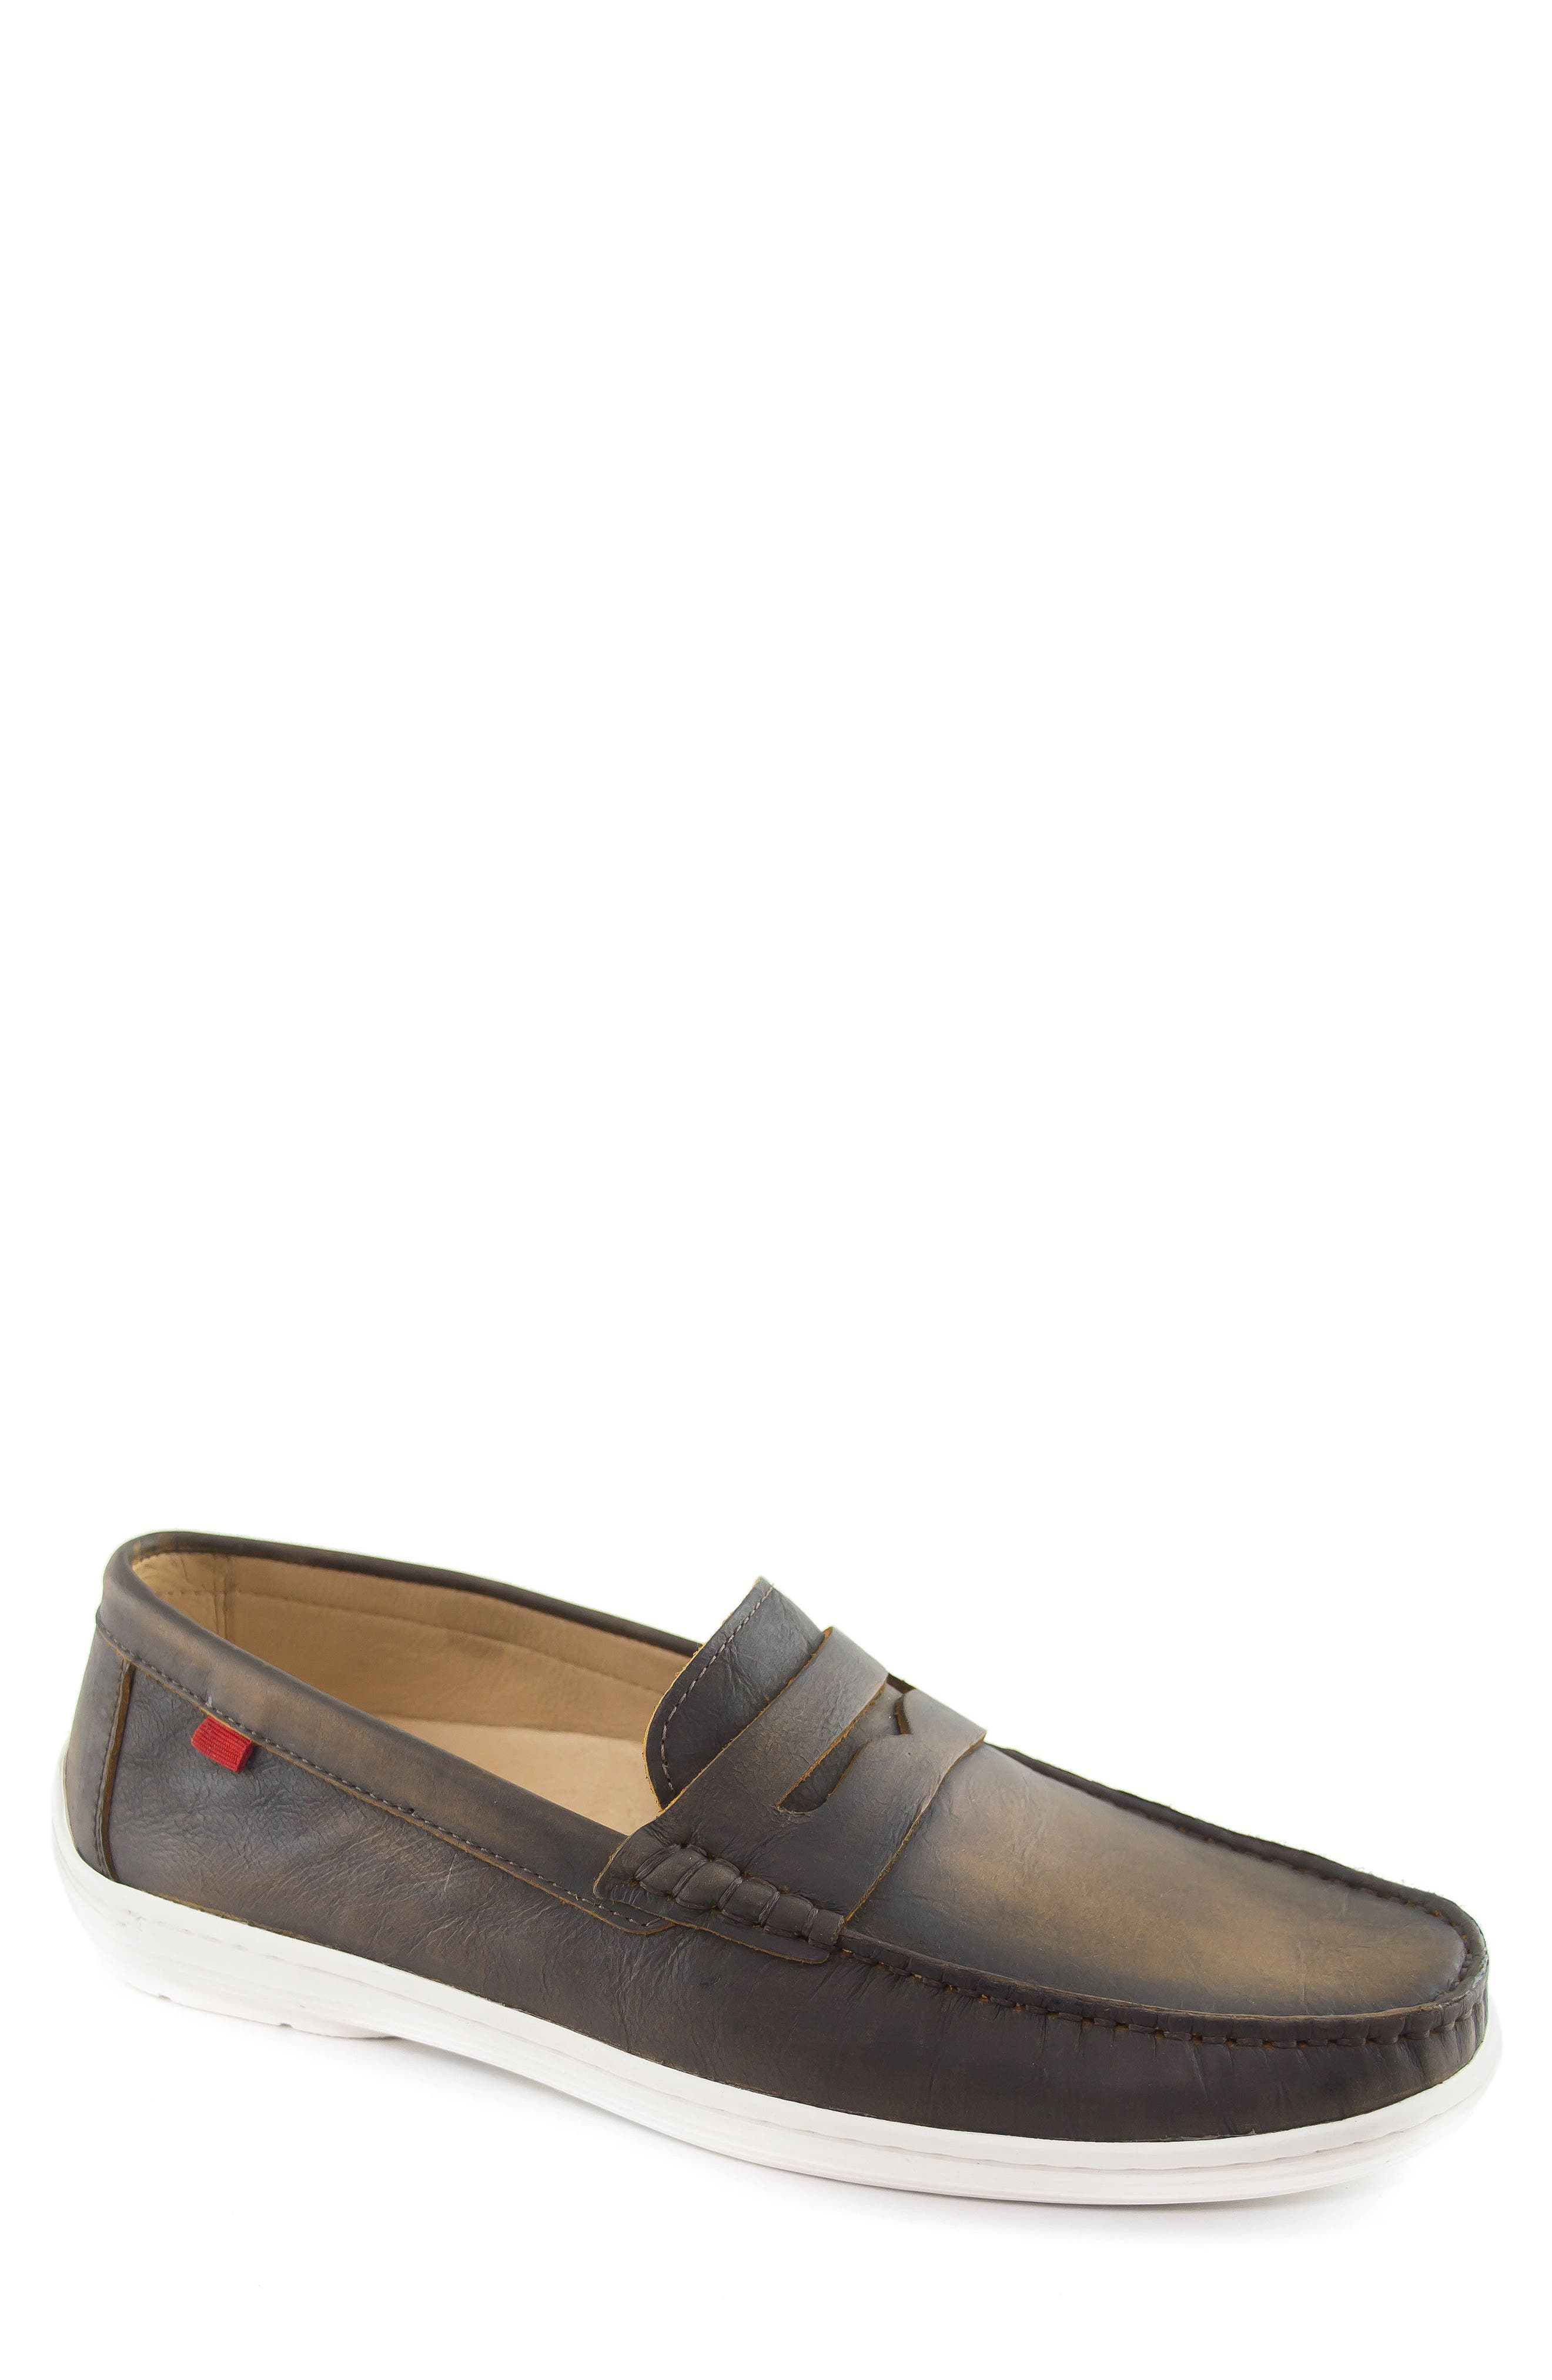 Atlantic Penny Loafer,                             Main thumbnail 1, color,                             206